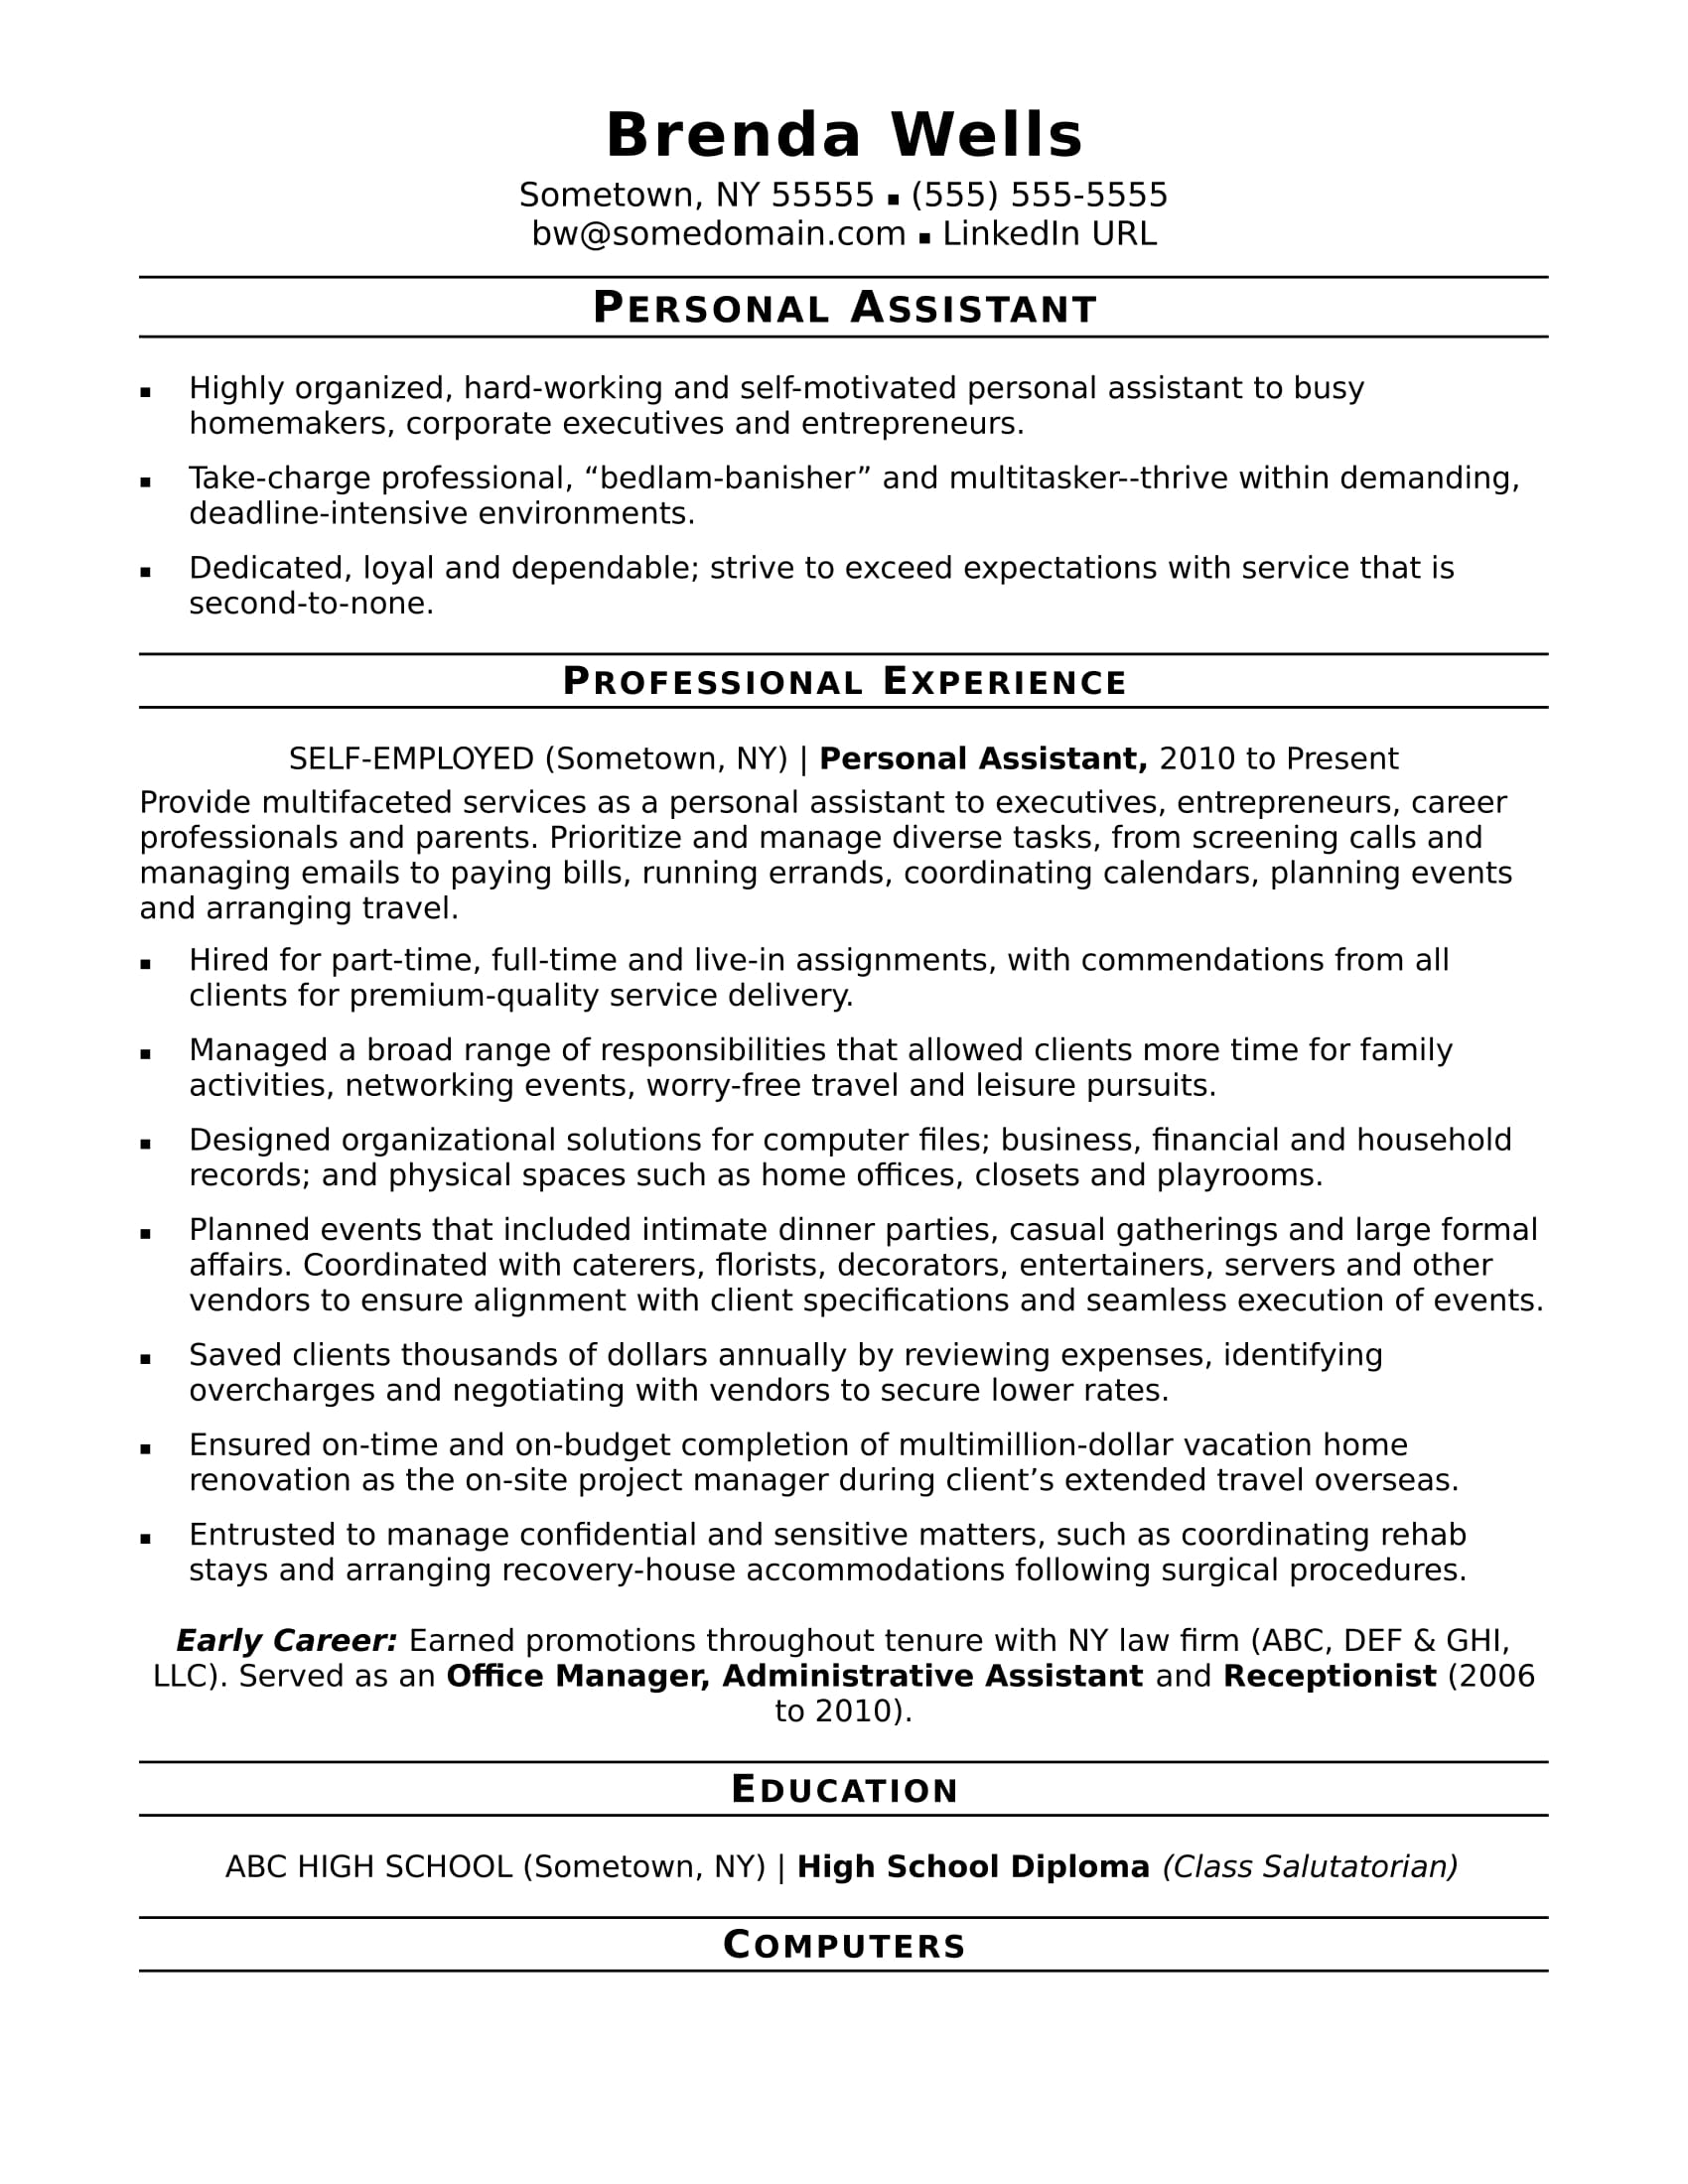 Resume For A Personal Assistant Resume Ideas